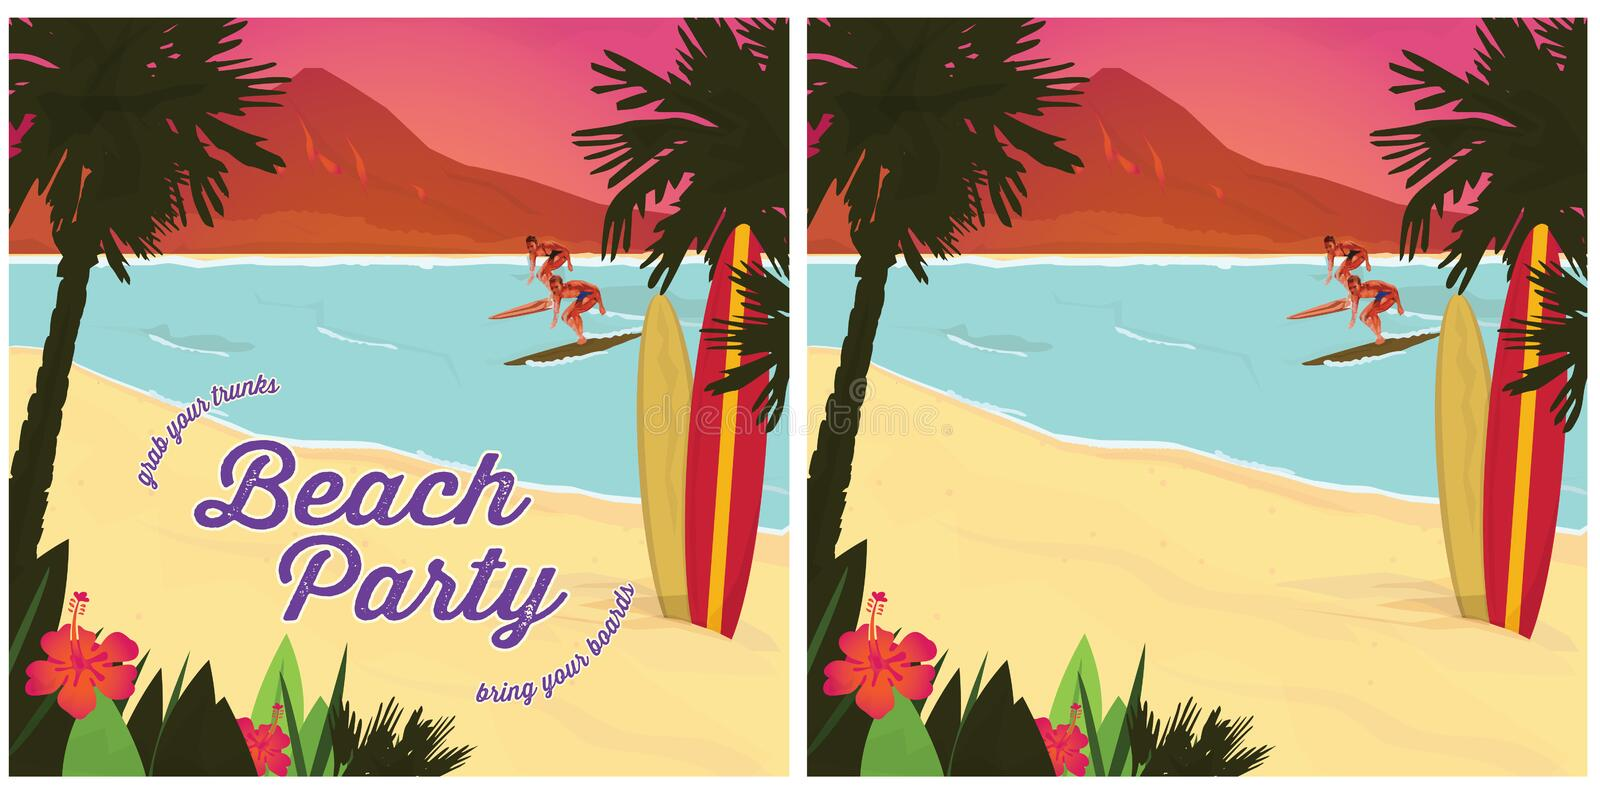 Beach Party Poster. Beach Party Surf Invitation Poster Retro Vector stock illustration